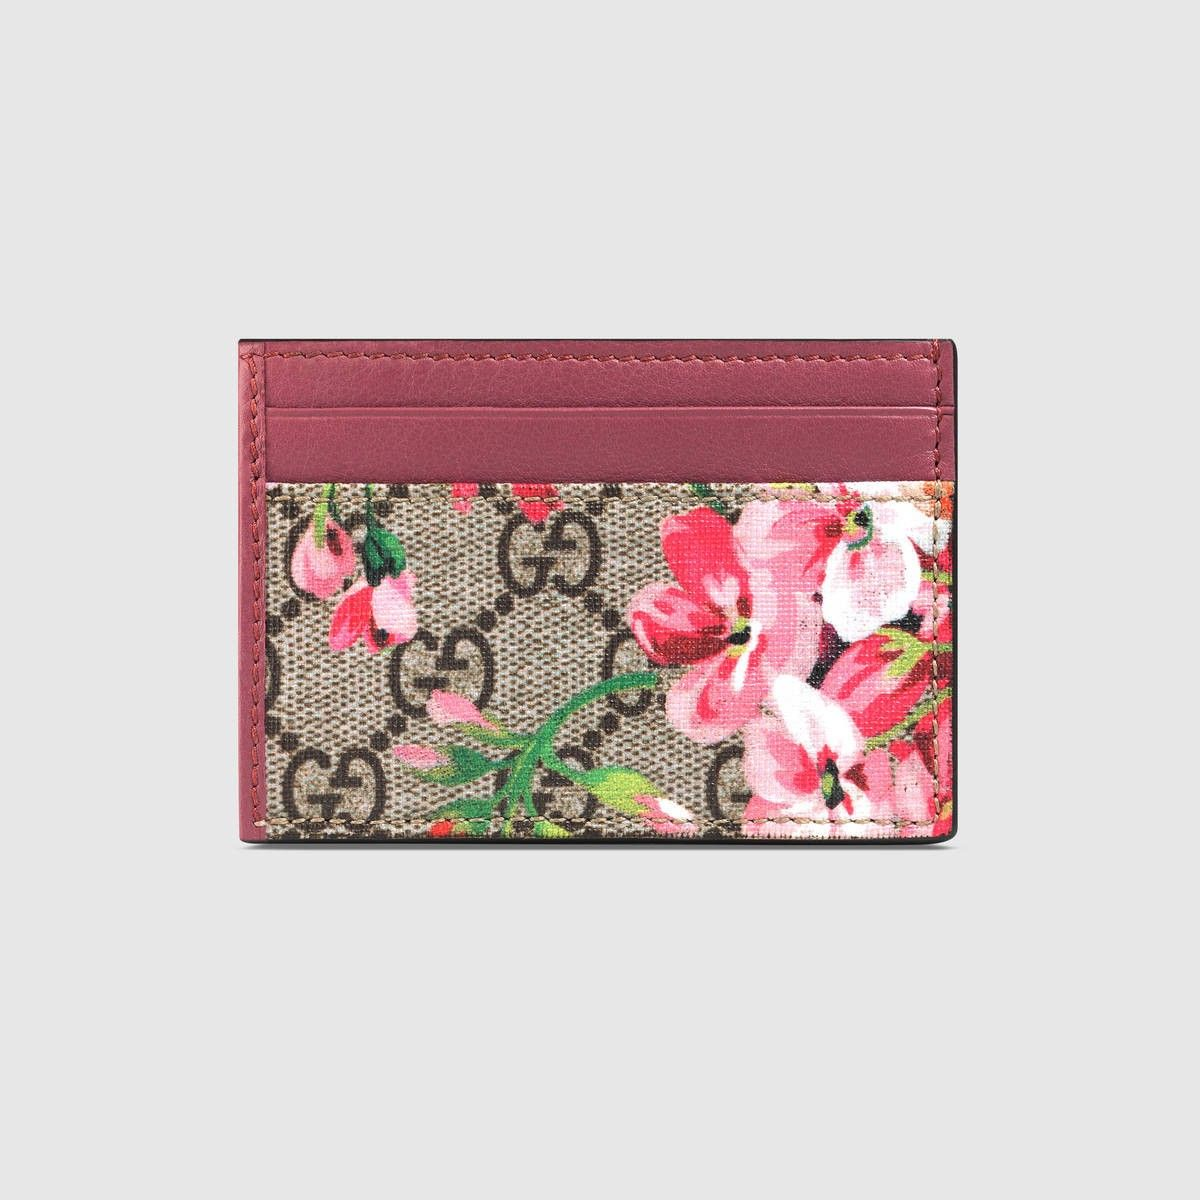 6354afc272b GUCCI Gg Blooms Card Case - Gg Supreme Canvas Blooms.  gucci  bags  leather   canvas